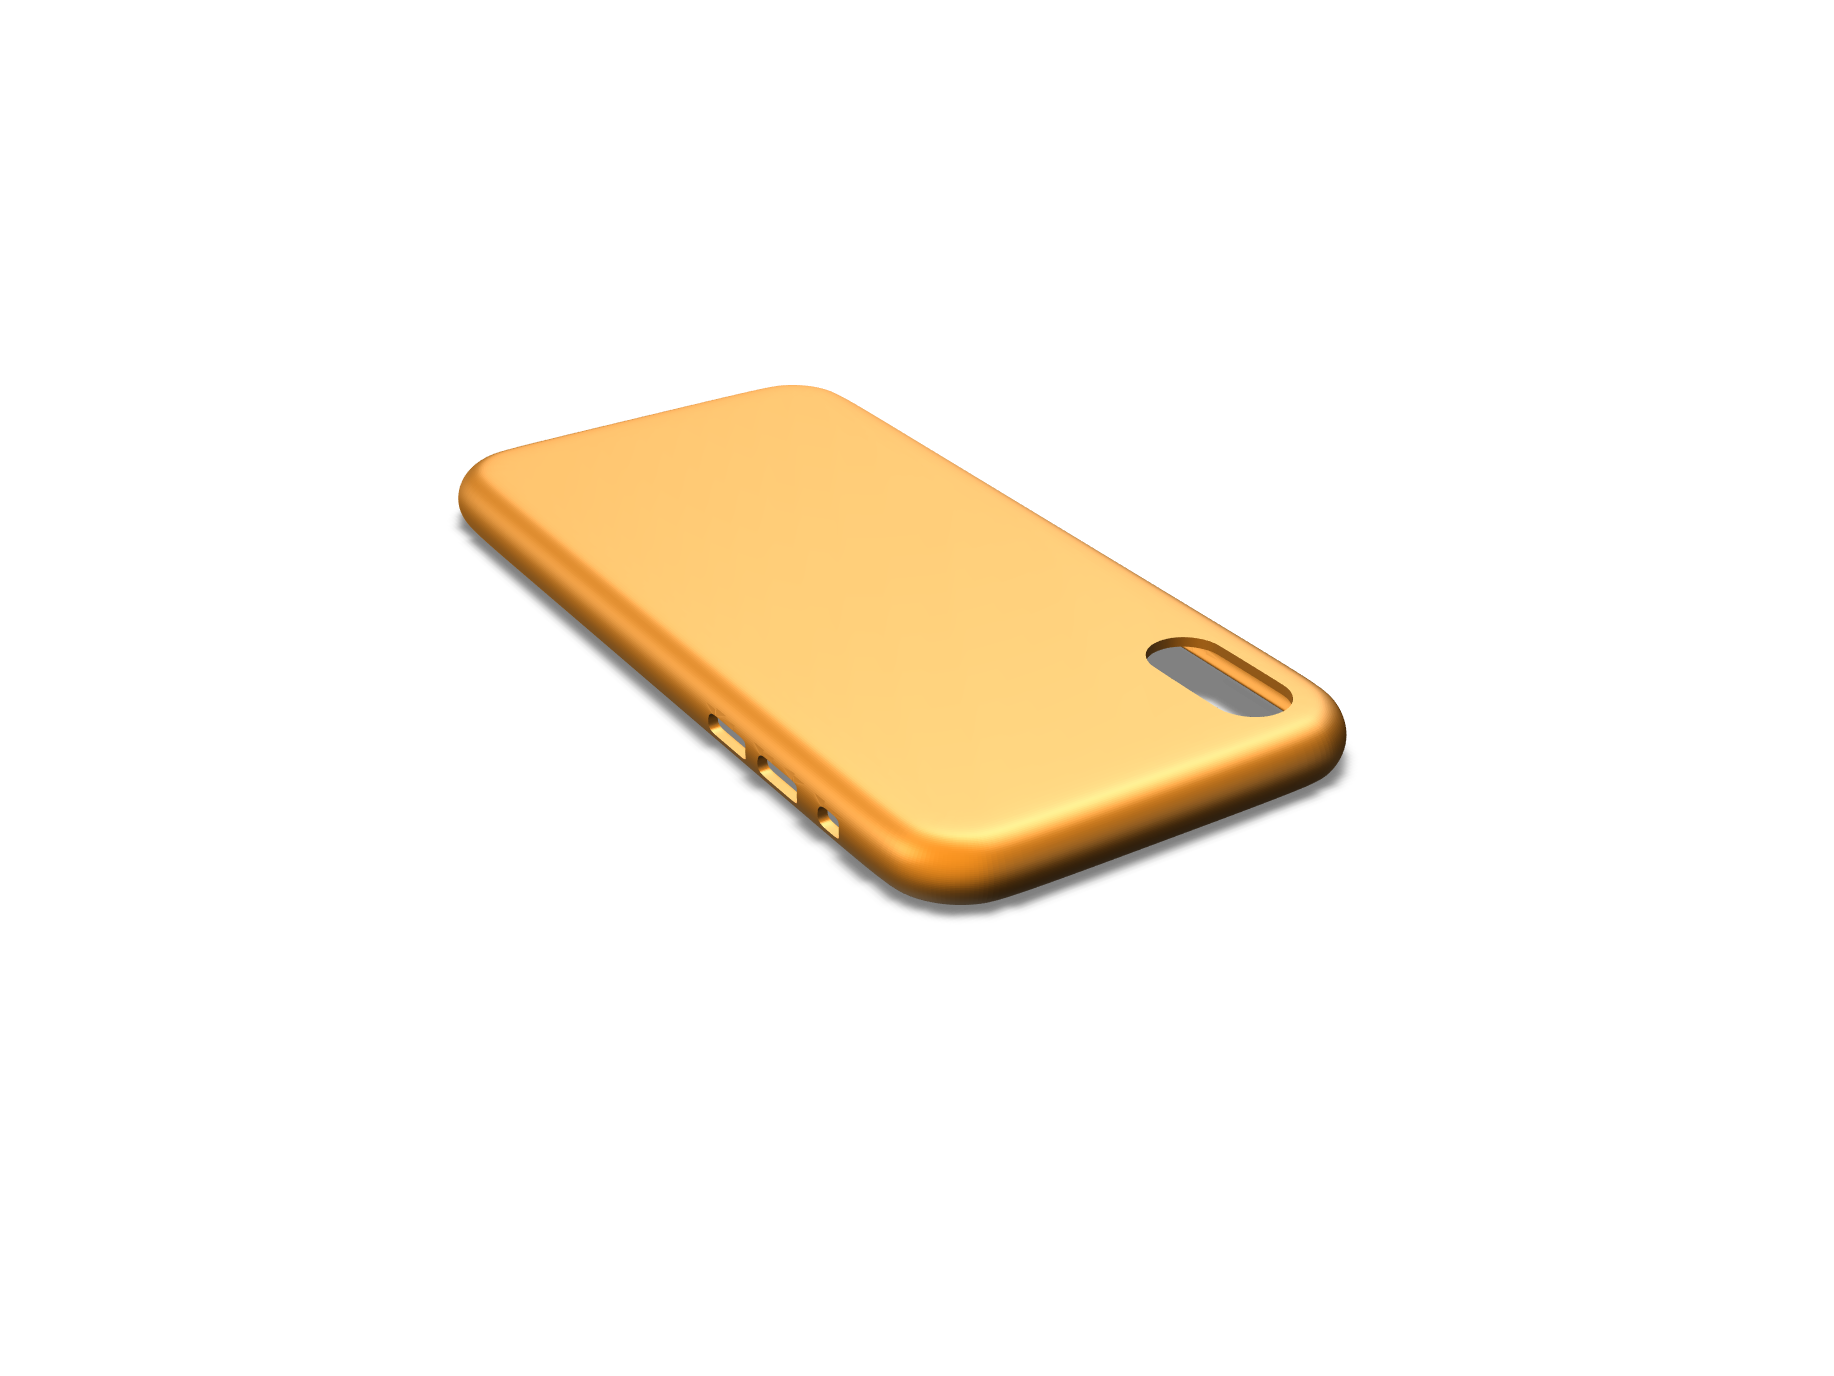 iPhone X case - 3D design by carlos.porto Nov 9, 2017